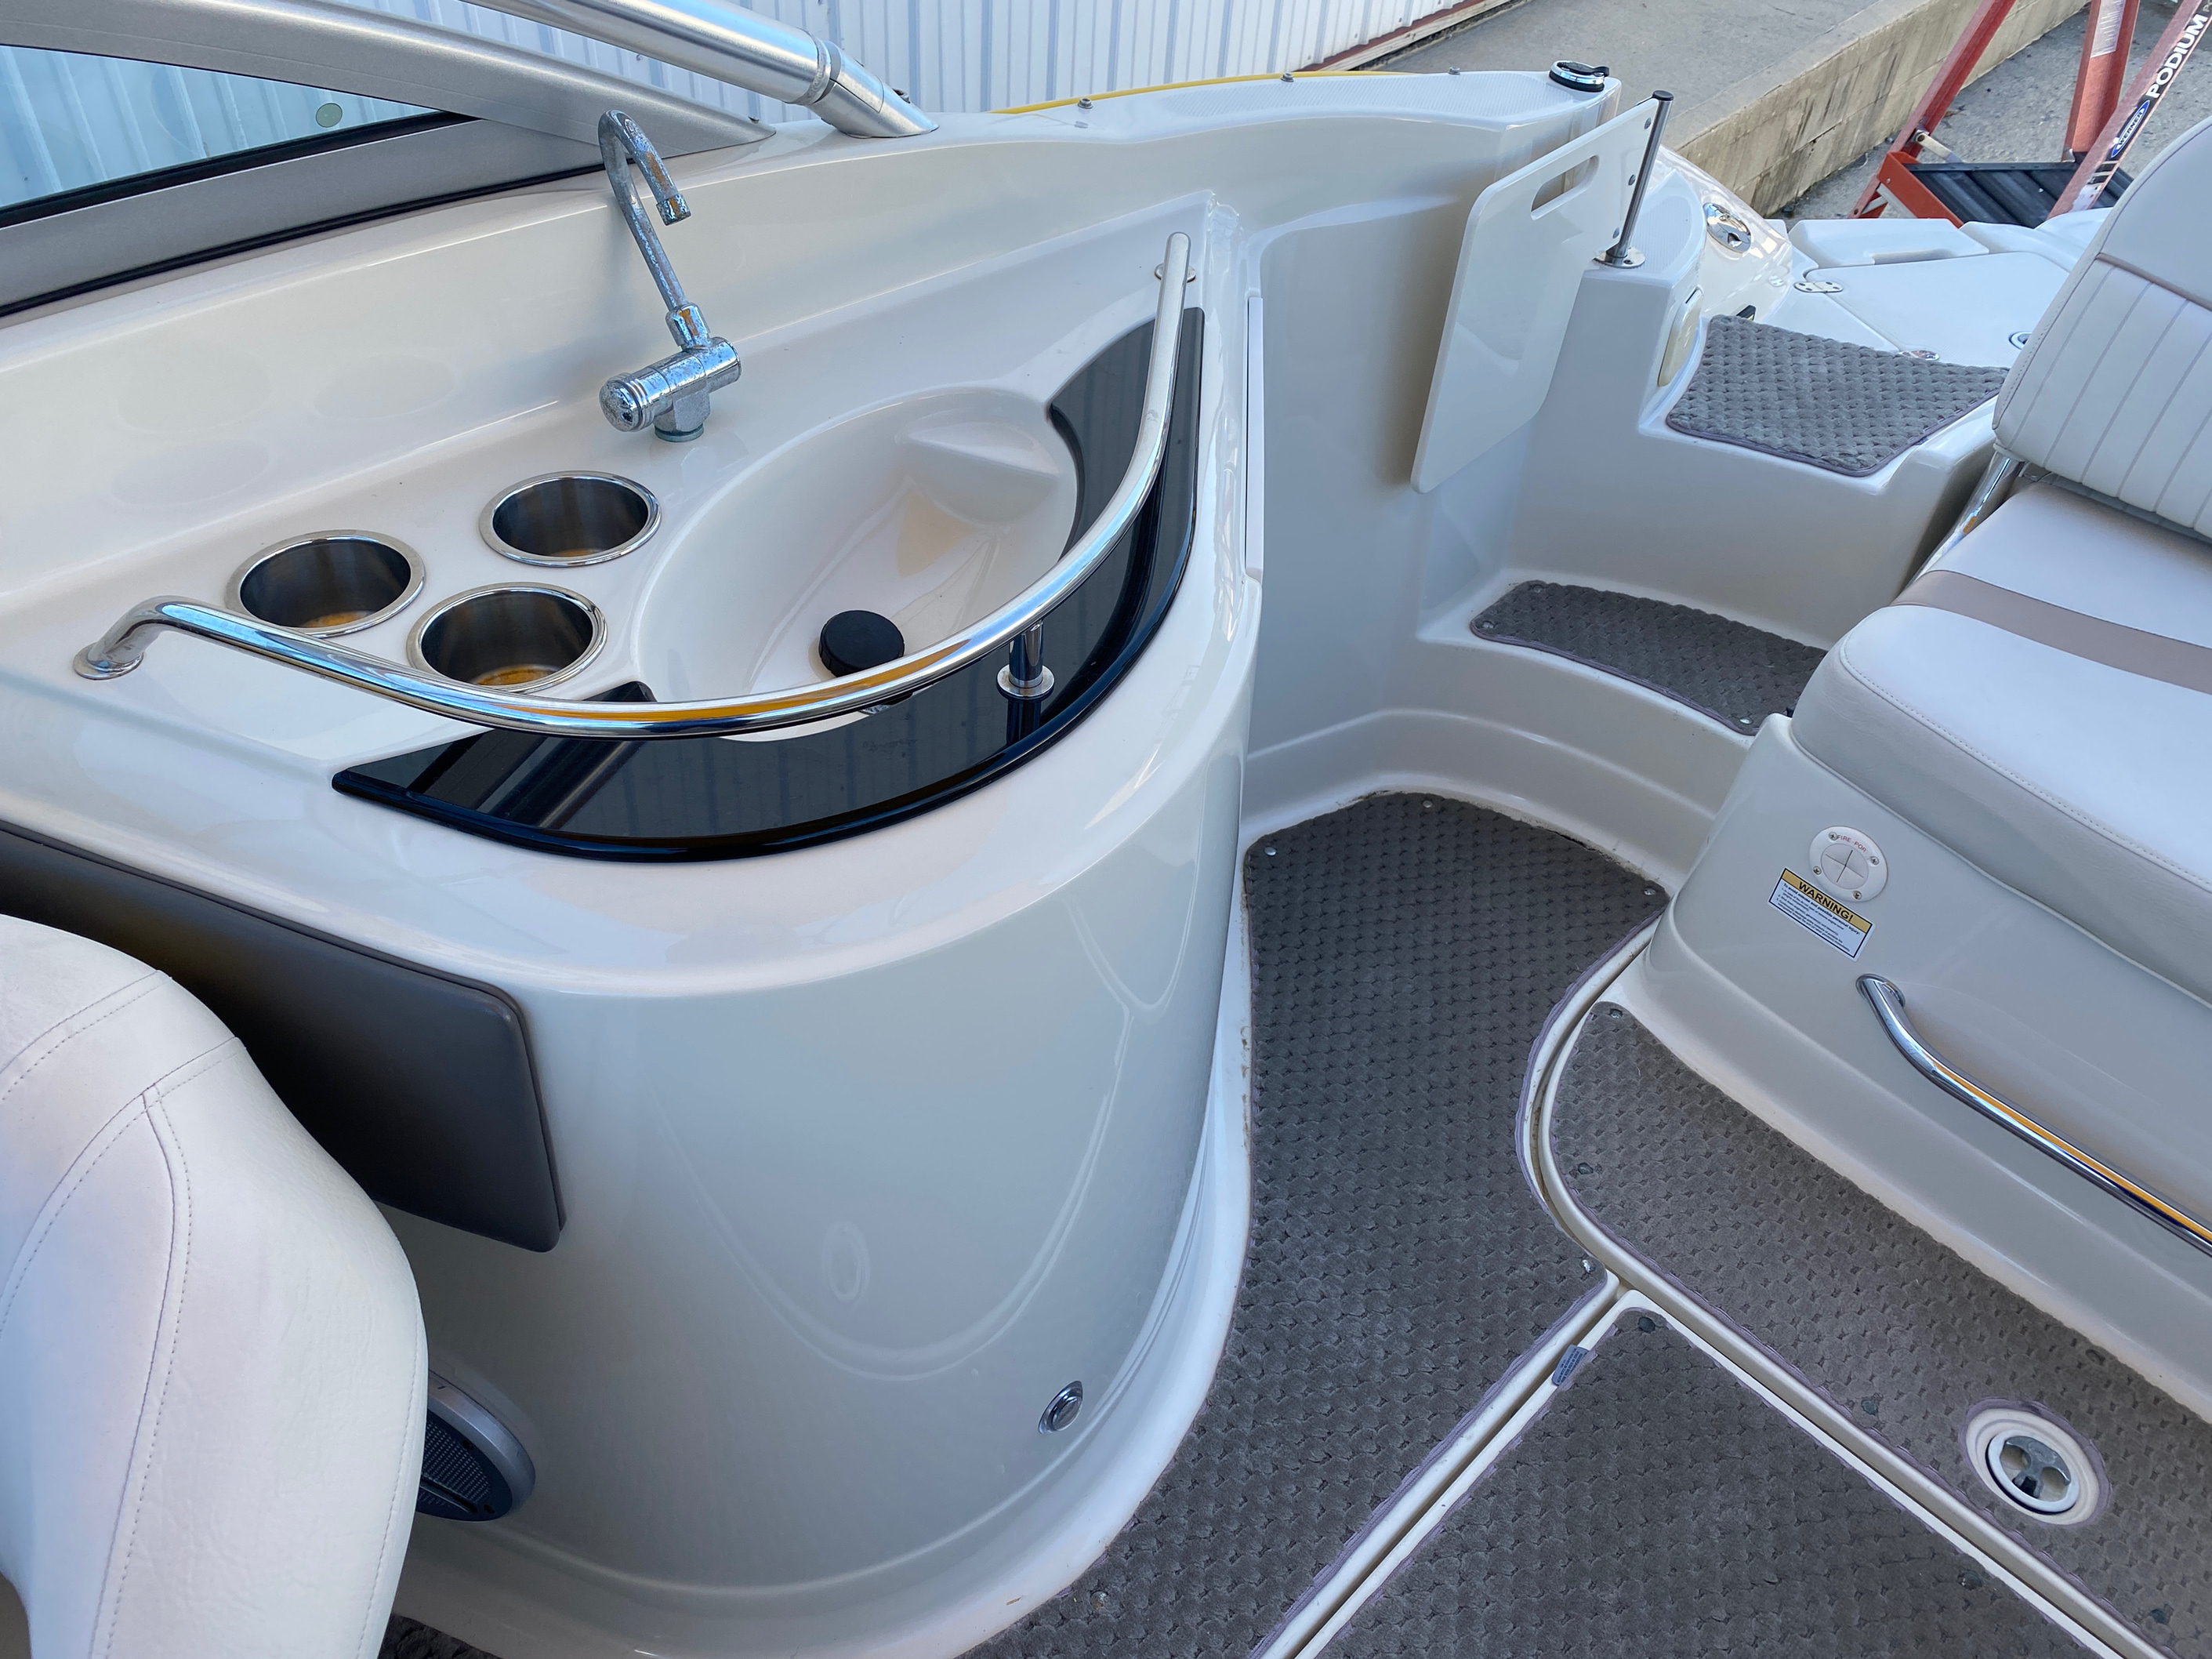 2008 Azure boat for sale, model of the boat is AZ 240 & Image # 16 of 18